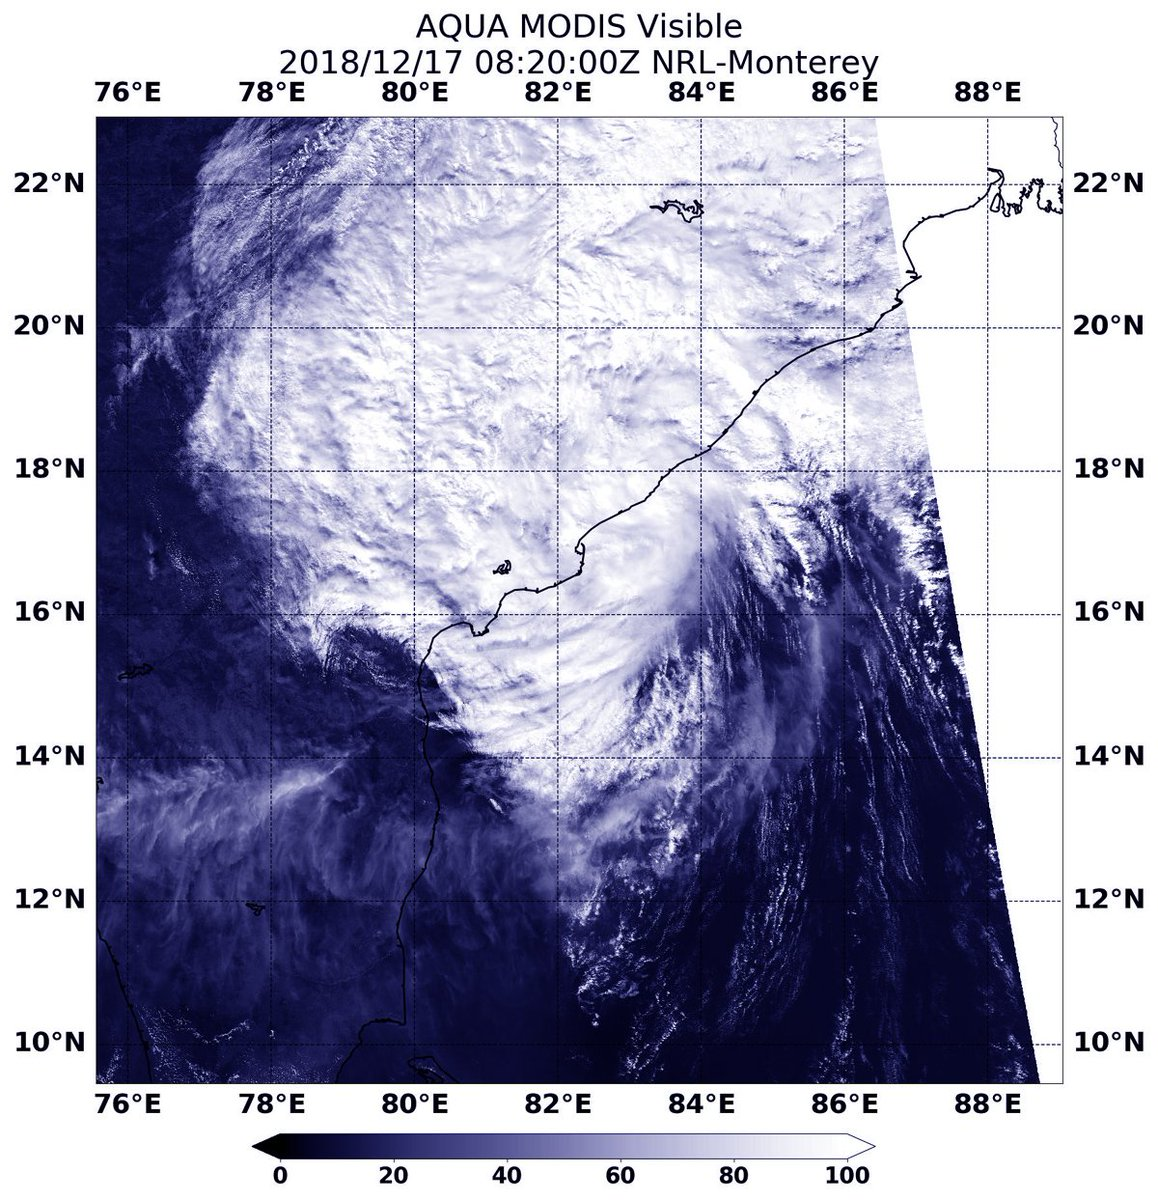 NW Indian Ocean - NASA Catches India Landfall of Tropical Depression #Phethai NASA's Aqua satellite passed over the Northwestern Indian Ocean and captured a visible image of Tropical Depression Phethai after it made landfall in southeastern India. https://t.co/3AX2FSUVVo